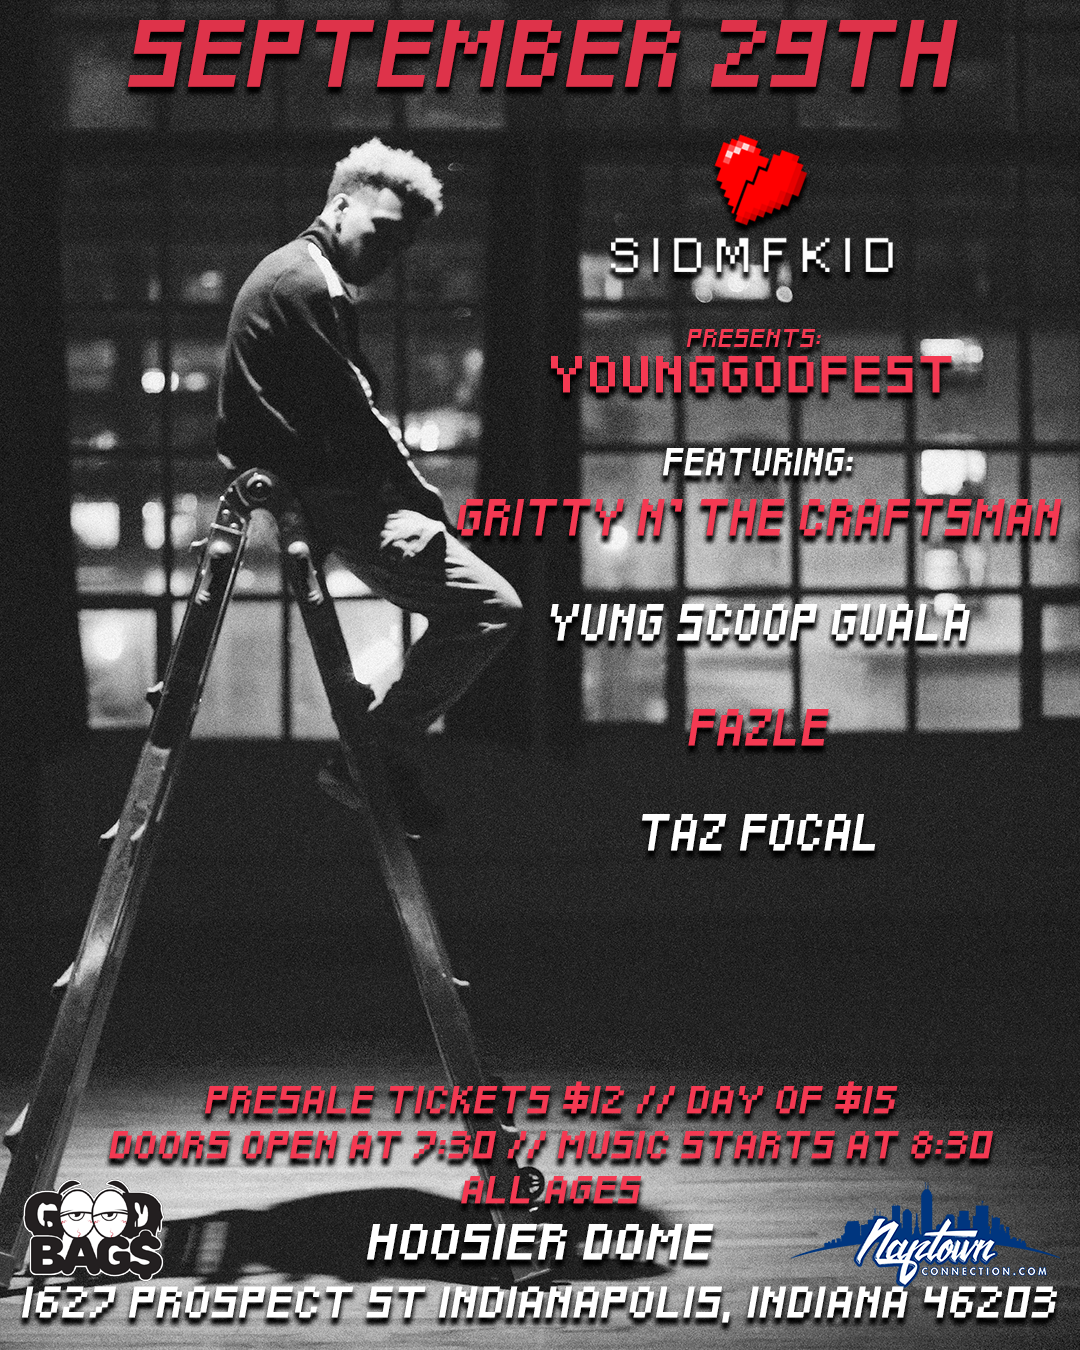 NEW FLYER SEPT 29TH 2.png